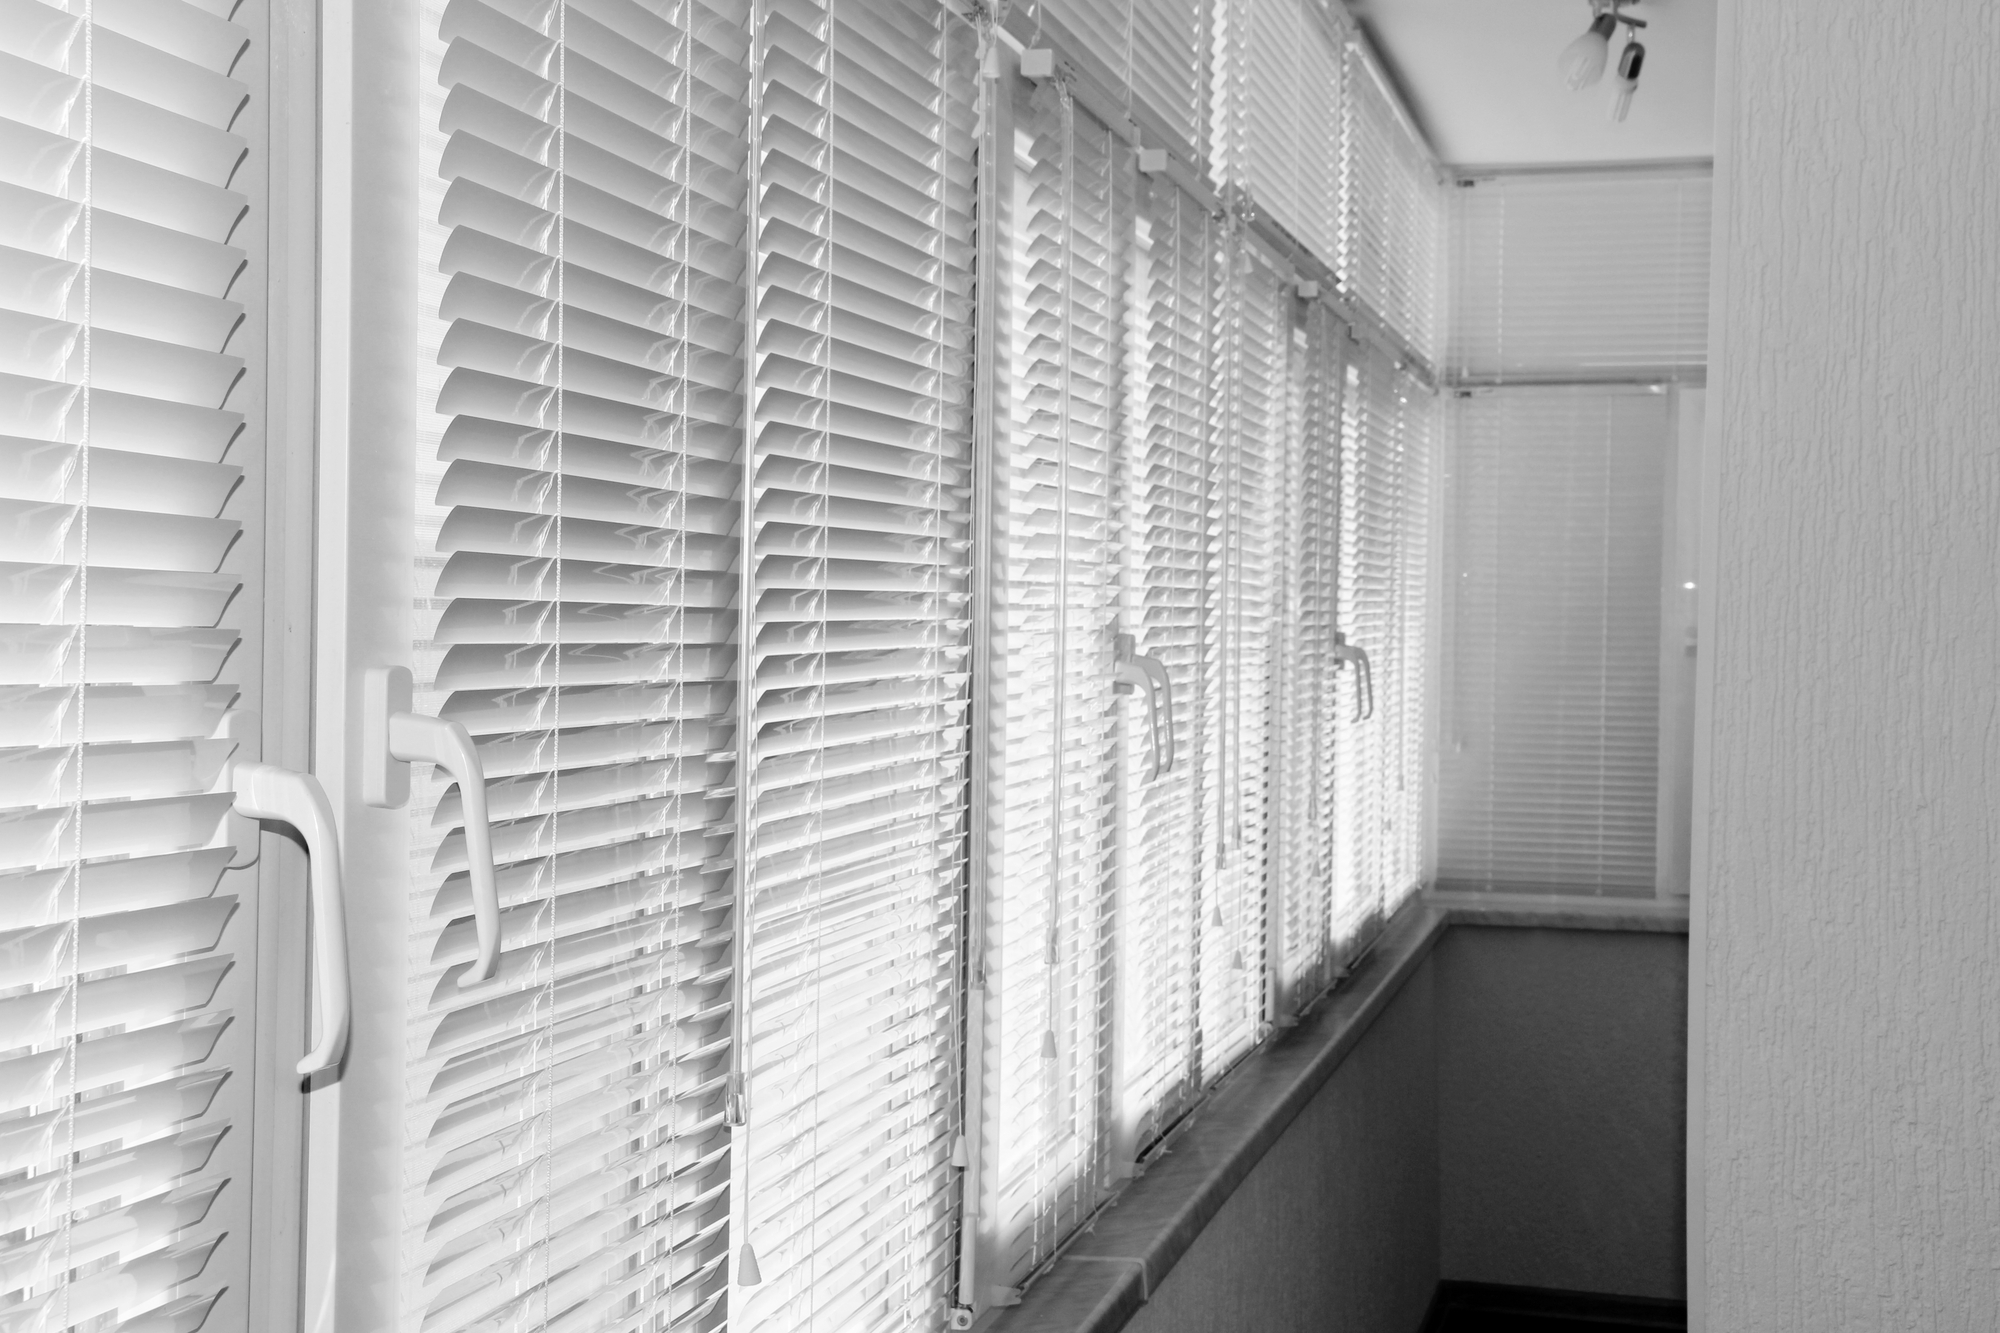 Balcony windows with shutters